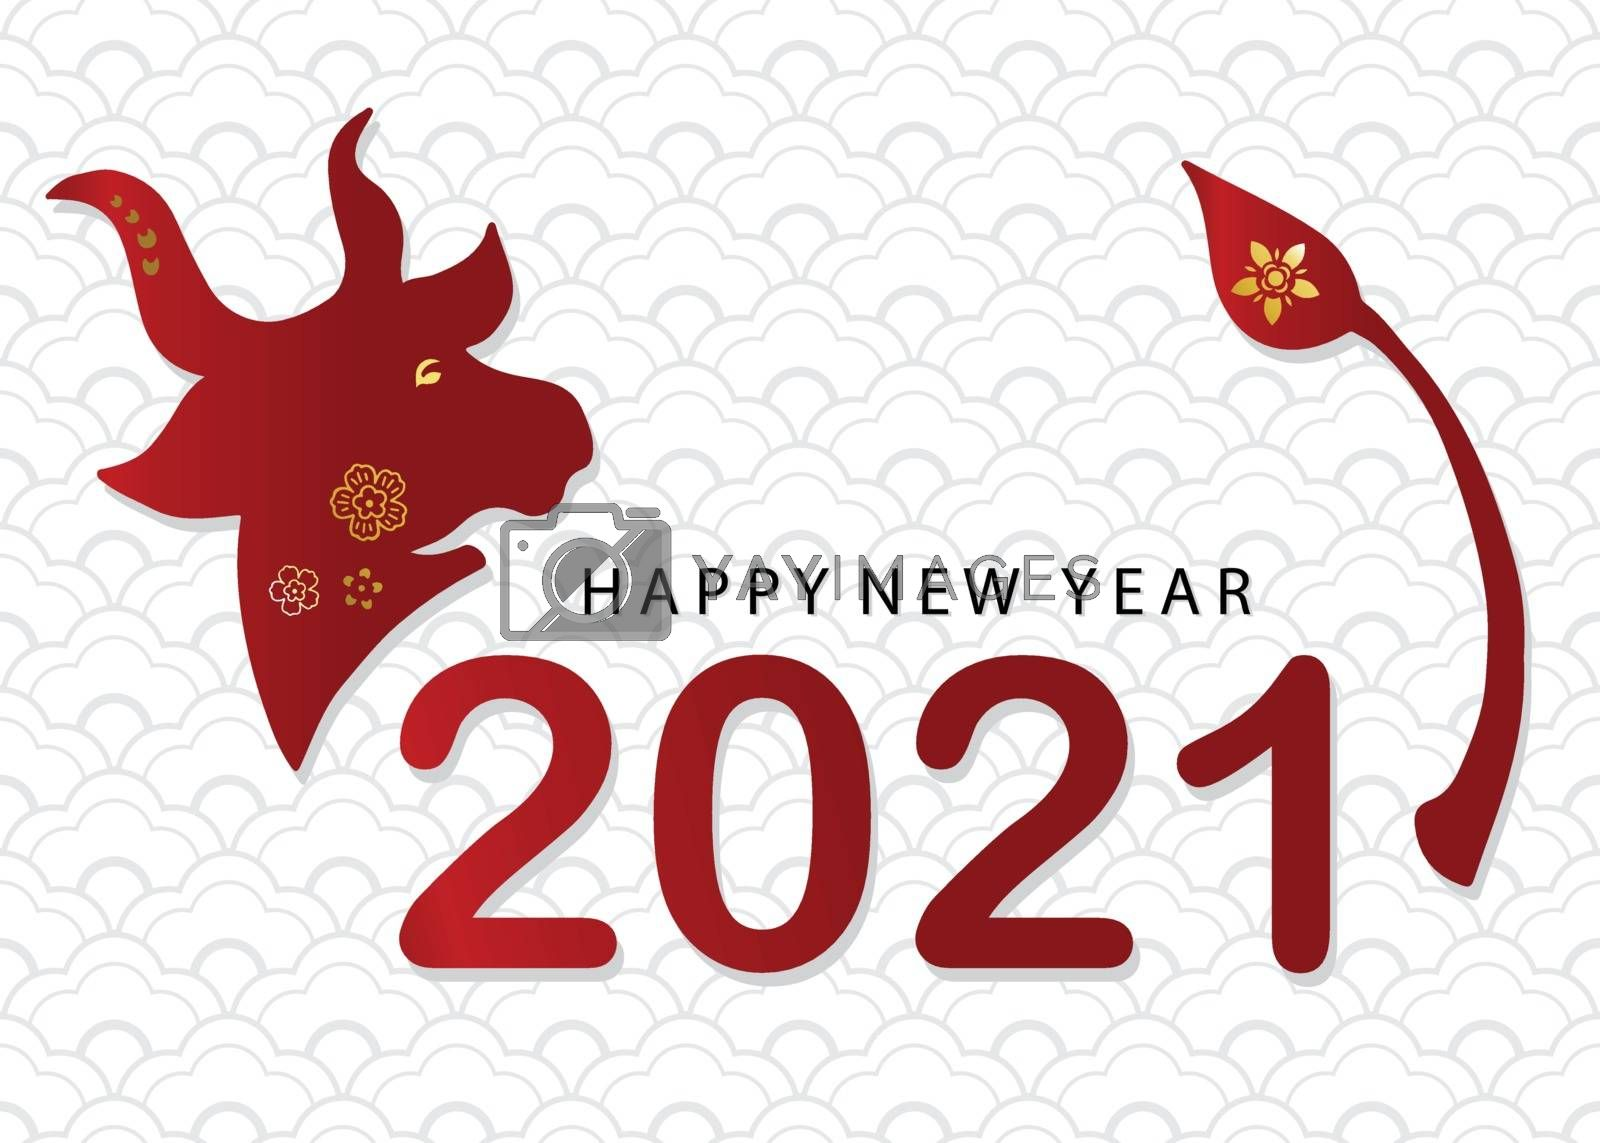 Happy Chinese new year 2021 greeting with lantern,flower,ox in p by supidcha